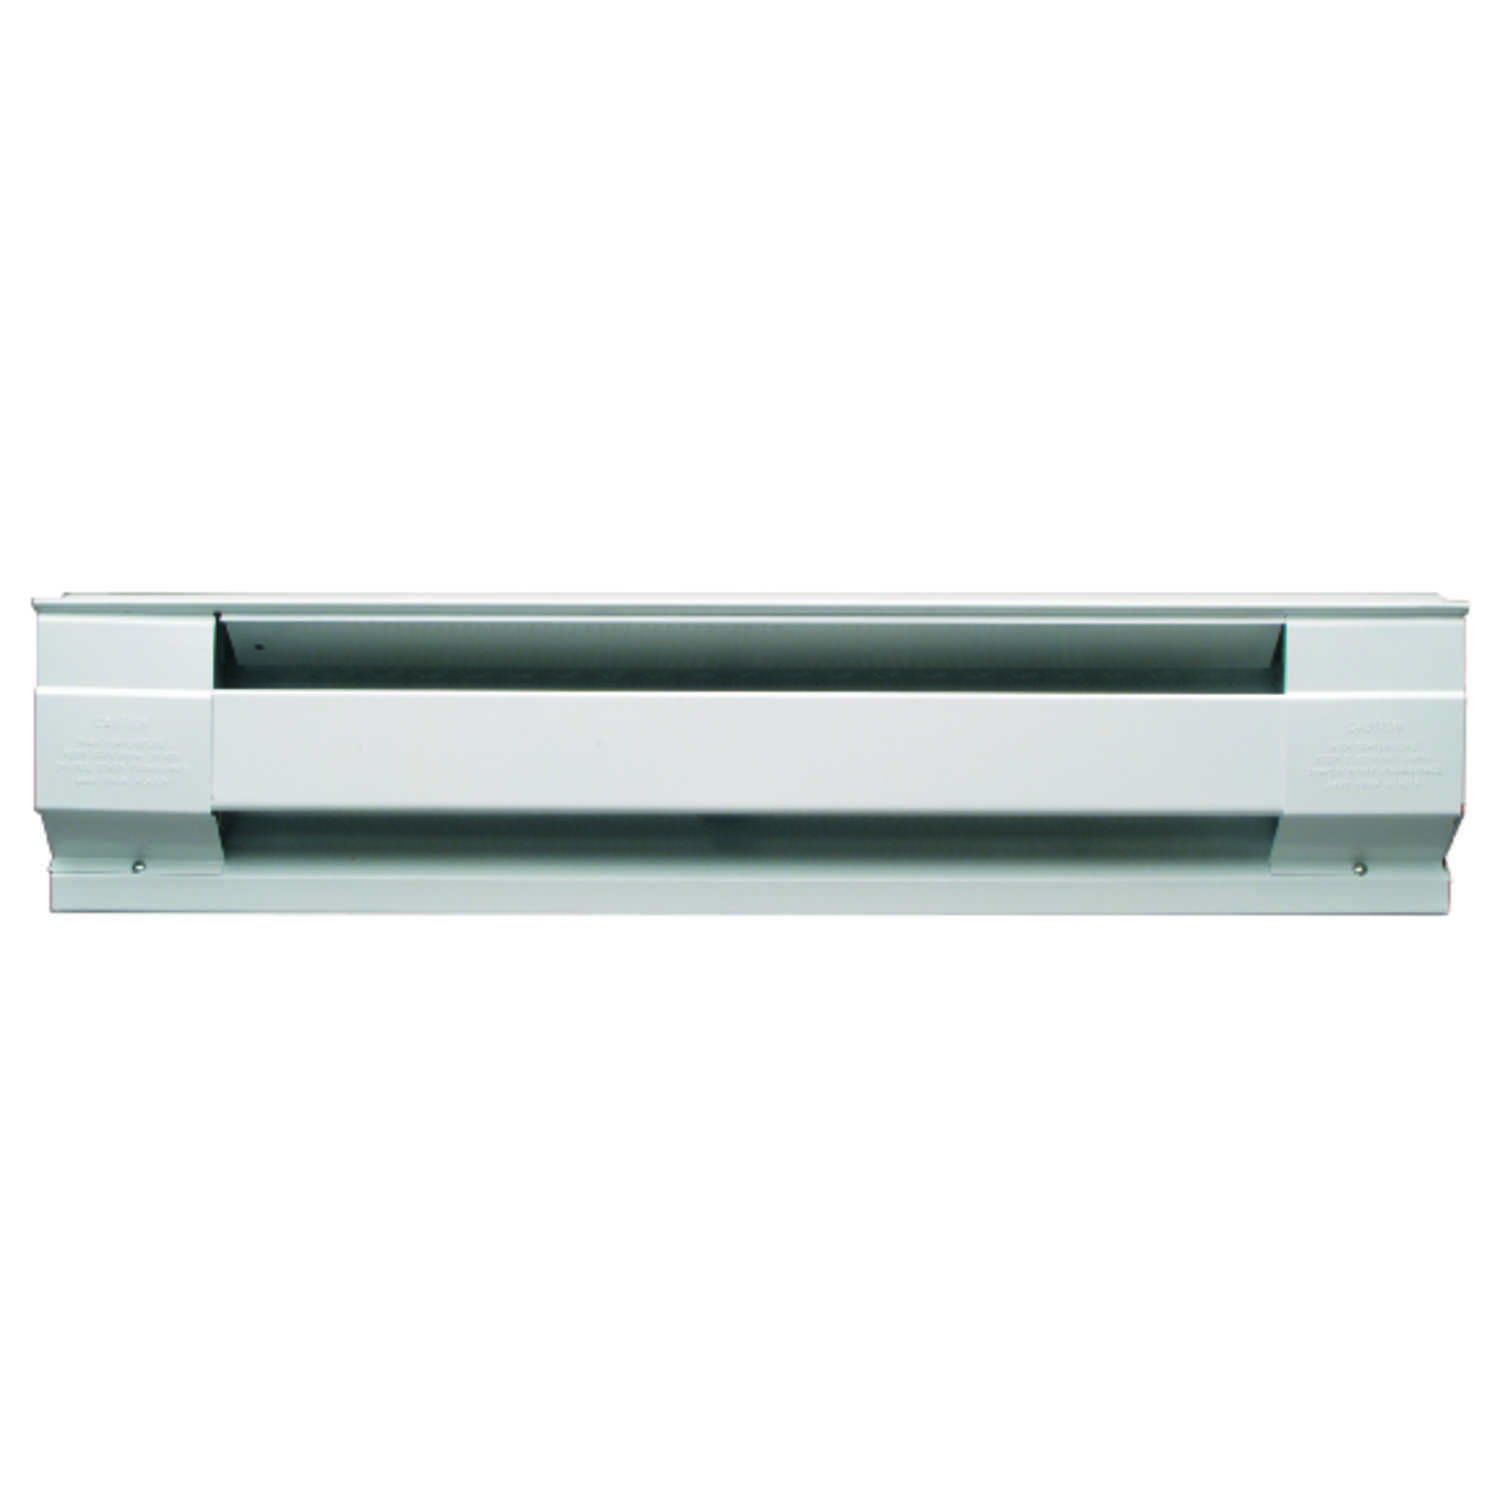 Cadet  250 sq. ft. 5120 BTU Convection  Baseboard Heater